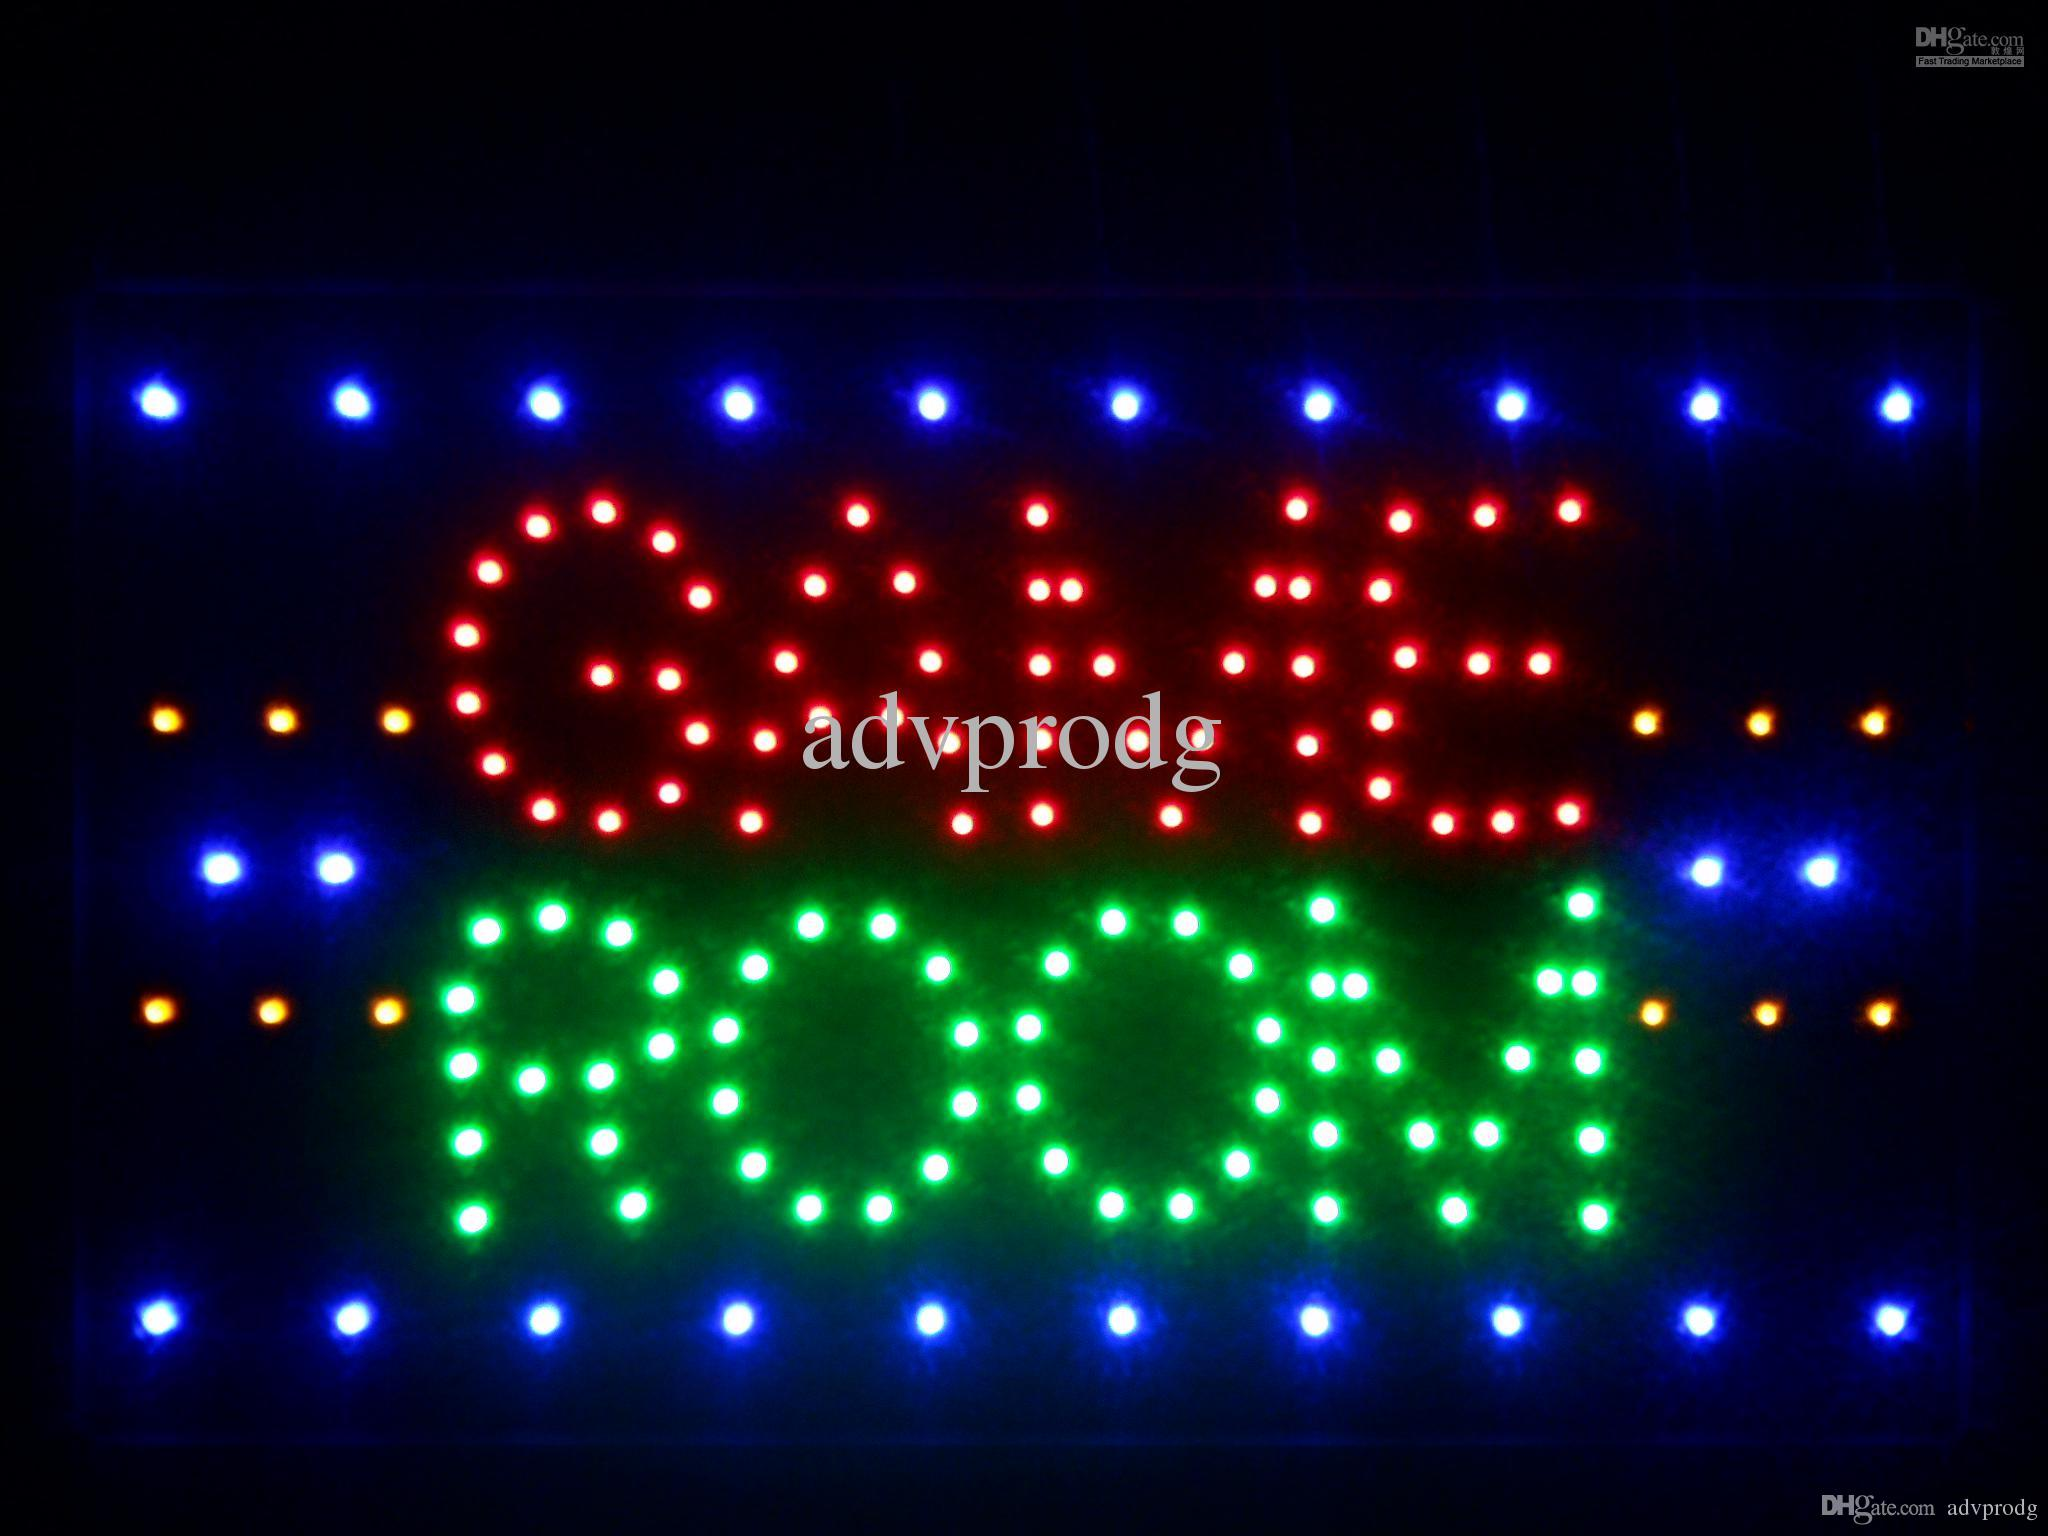 2017 Nled047 R Game Room Led Neon Light Sign 16 X 10 From